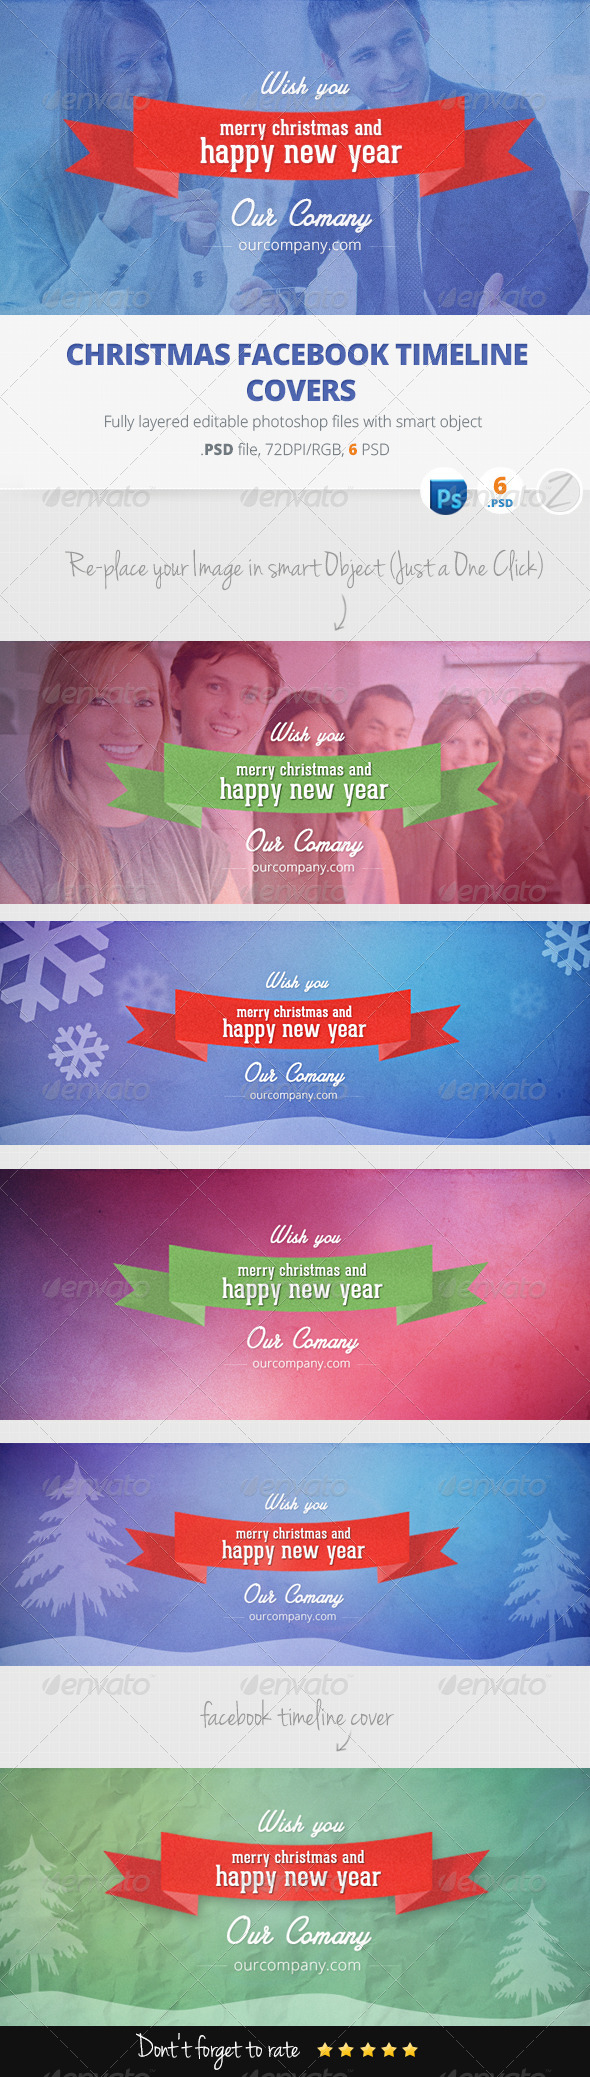 New Year and Christmas Facebook Timeline Covers - Facebook Timeline Covers Social Media